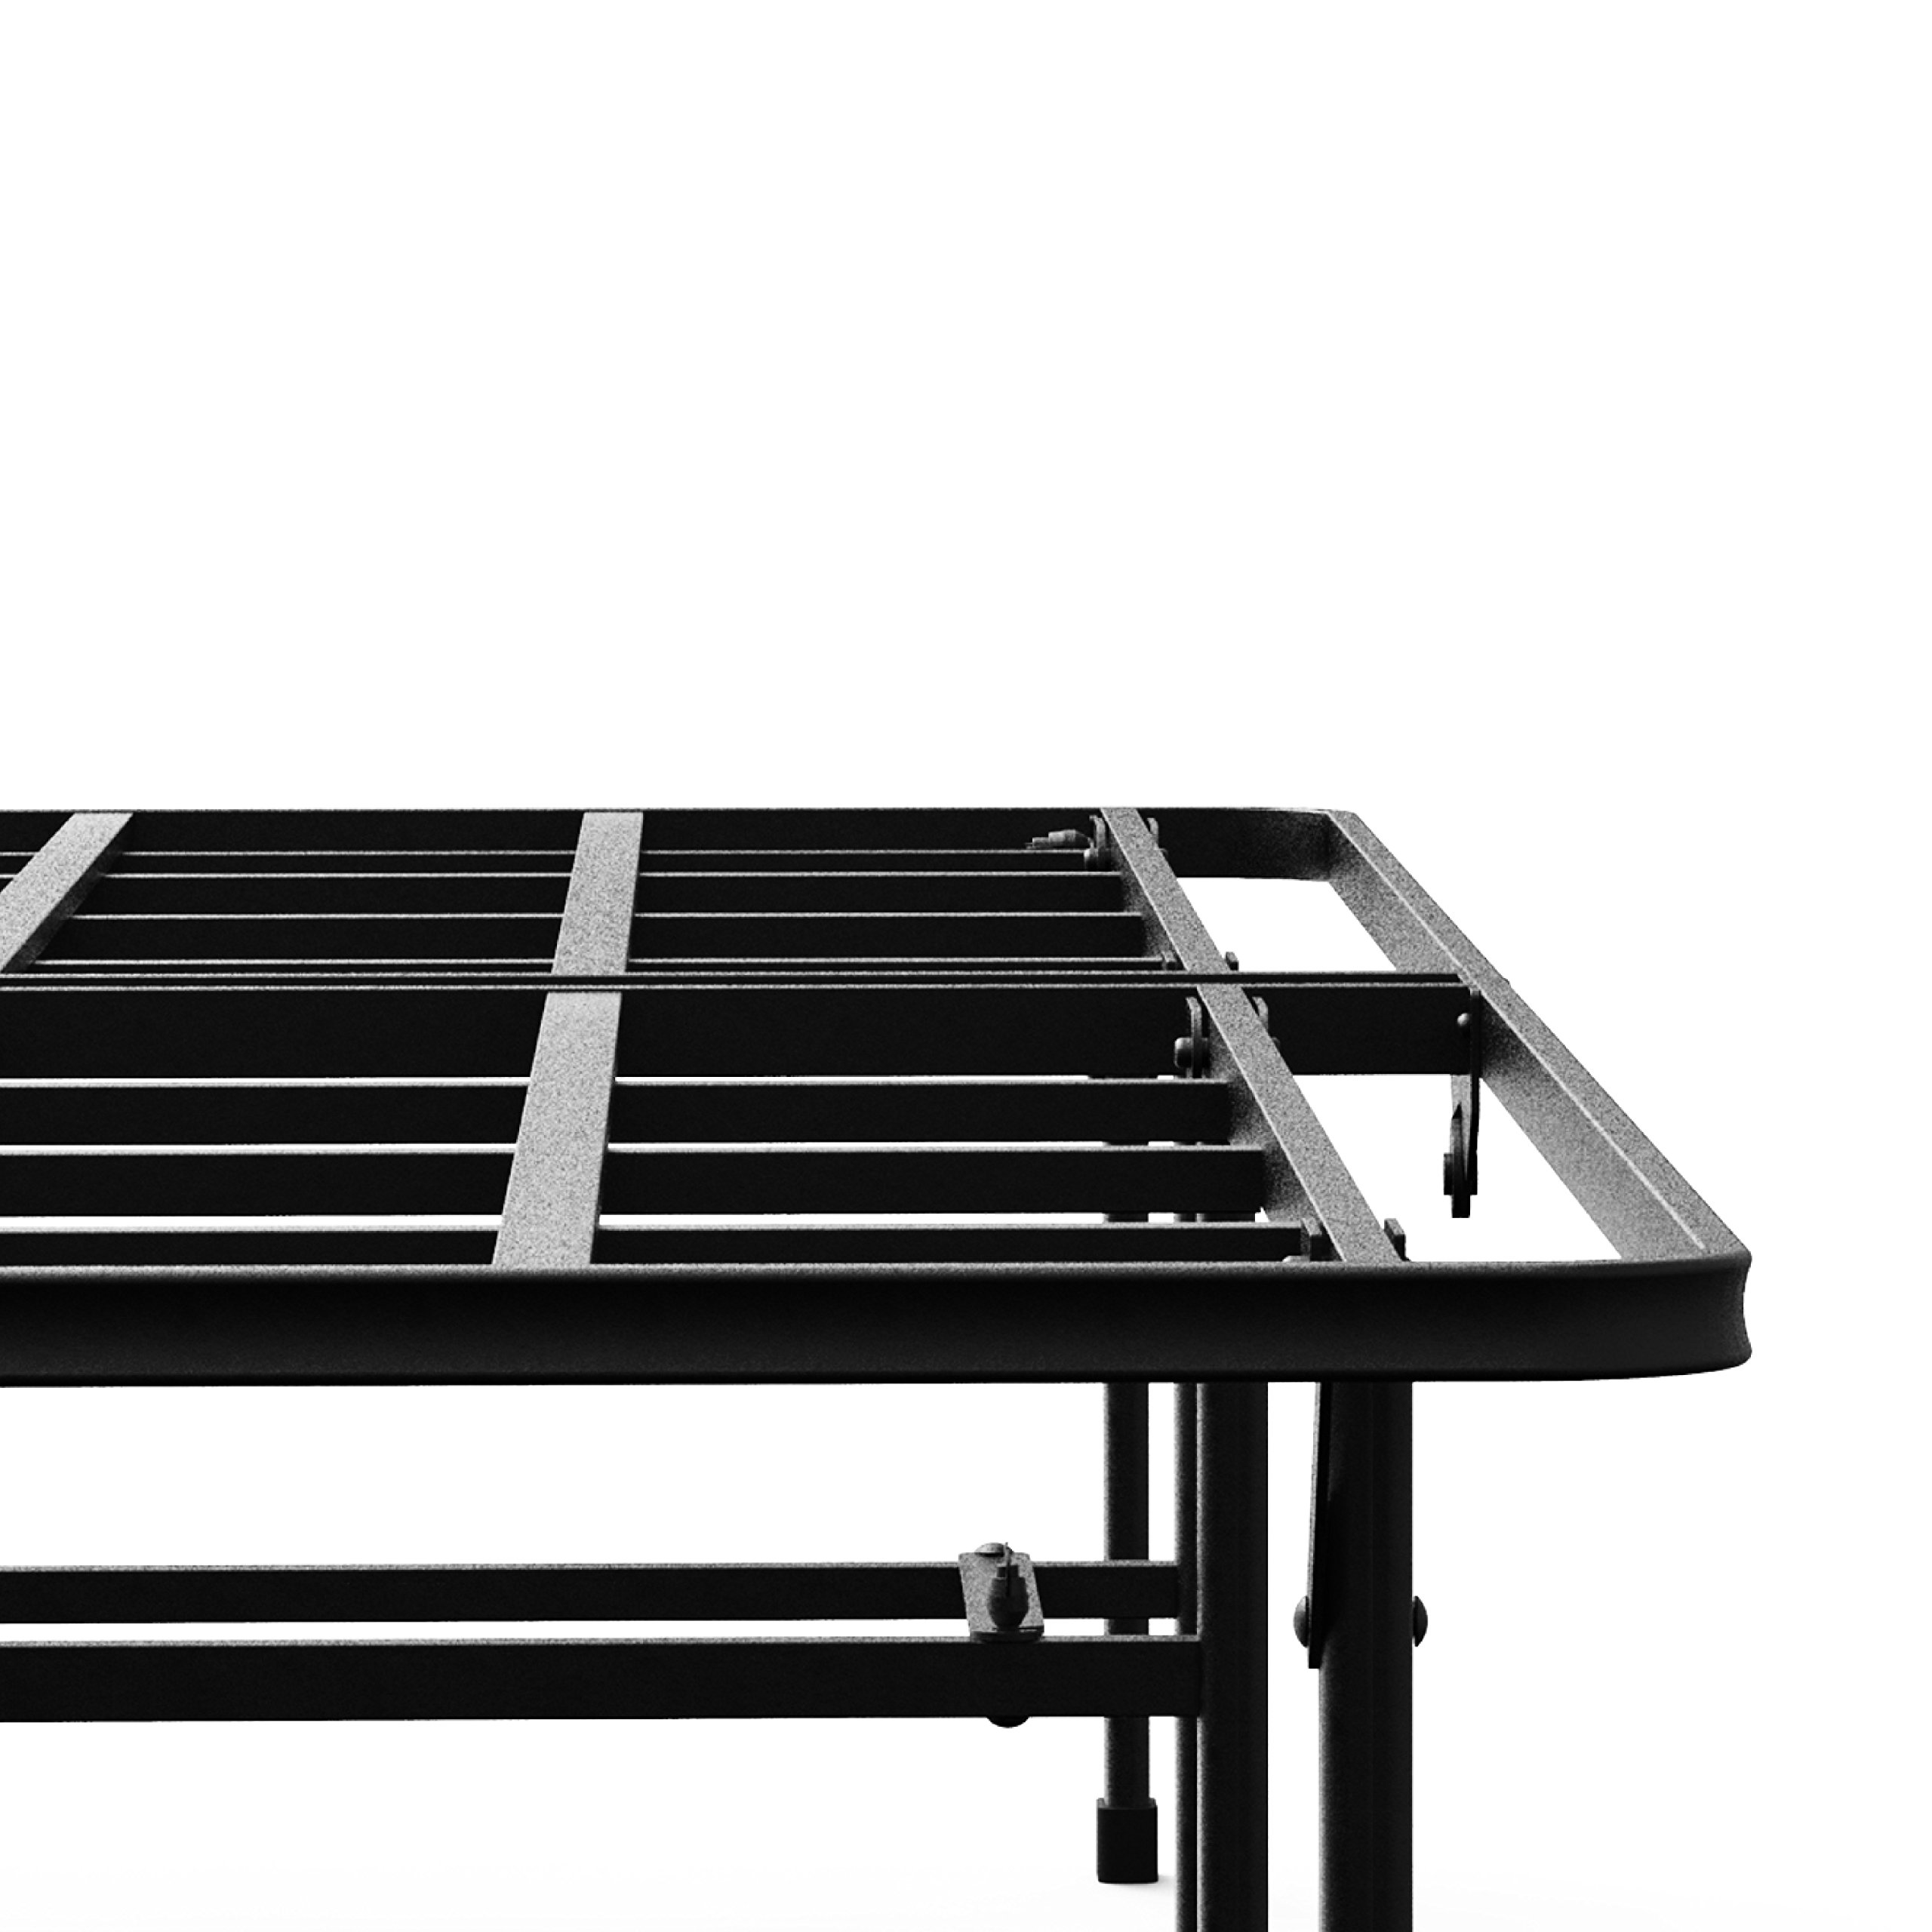 Zinus 14 inch elite smartbase mattress foundation big tall extra strong queen ebay - Extra tall bed frame queen ...